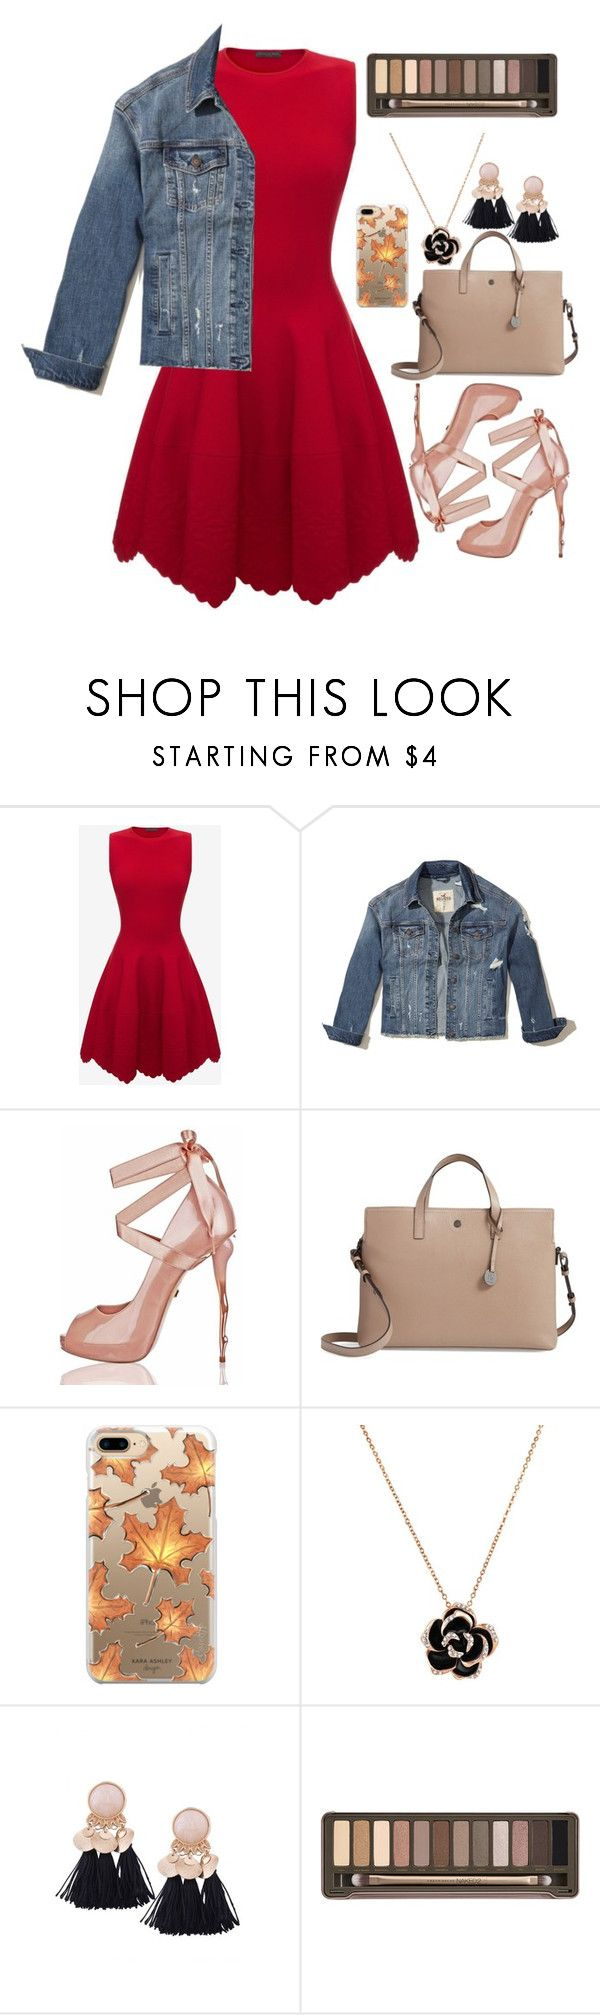 """""""Or we will run away to another galaxy"""" by sarah-rose-312205 on Polyvore featuring Alexander McQueen, Hollister Co., Lodis, Casetify and Urban Decay"""